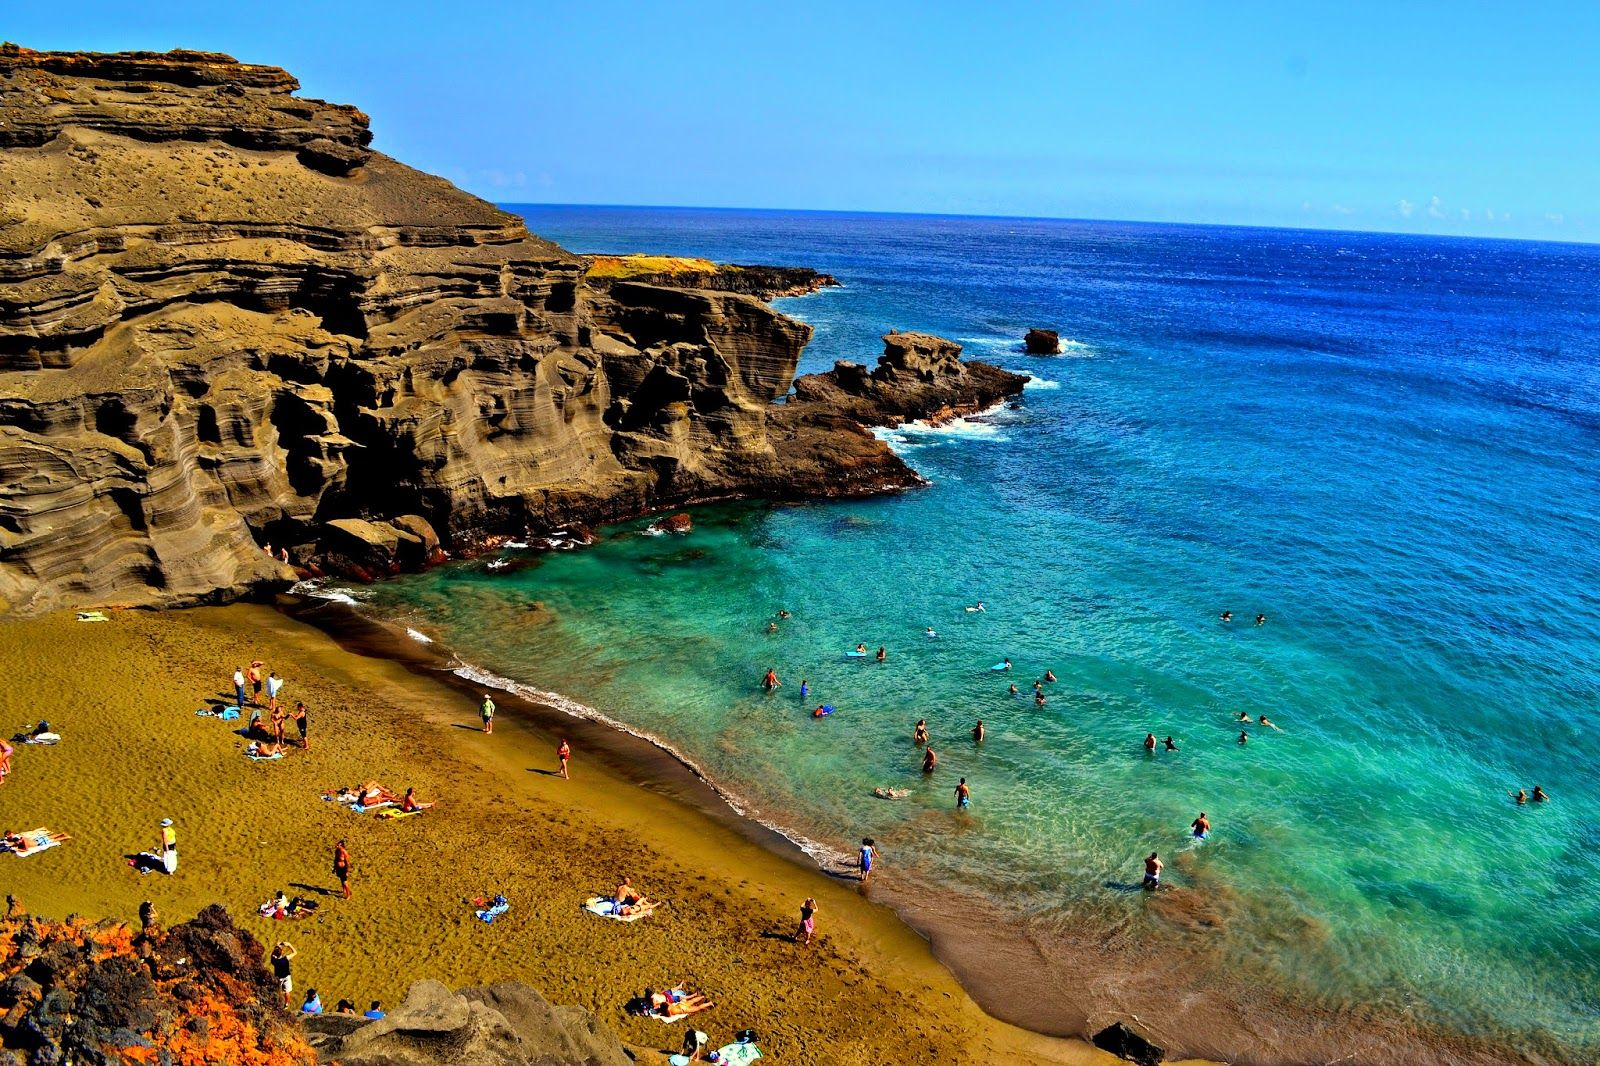 Hiked To The Green Sands Beach Family Travel Blog 5 Best Beaches On Island Of Hawaii